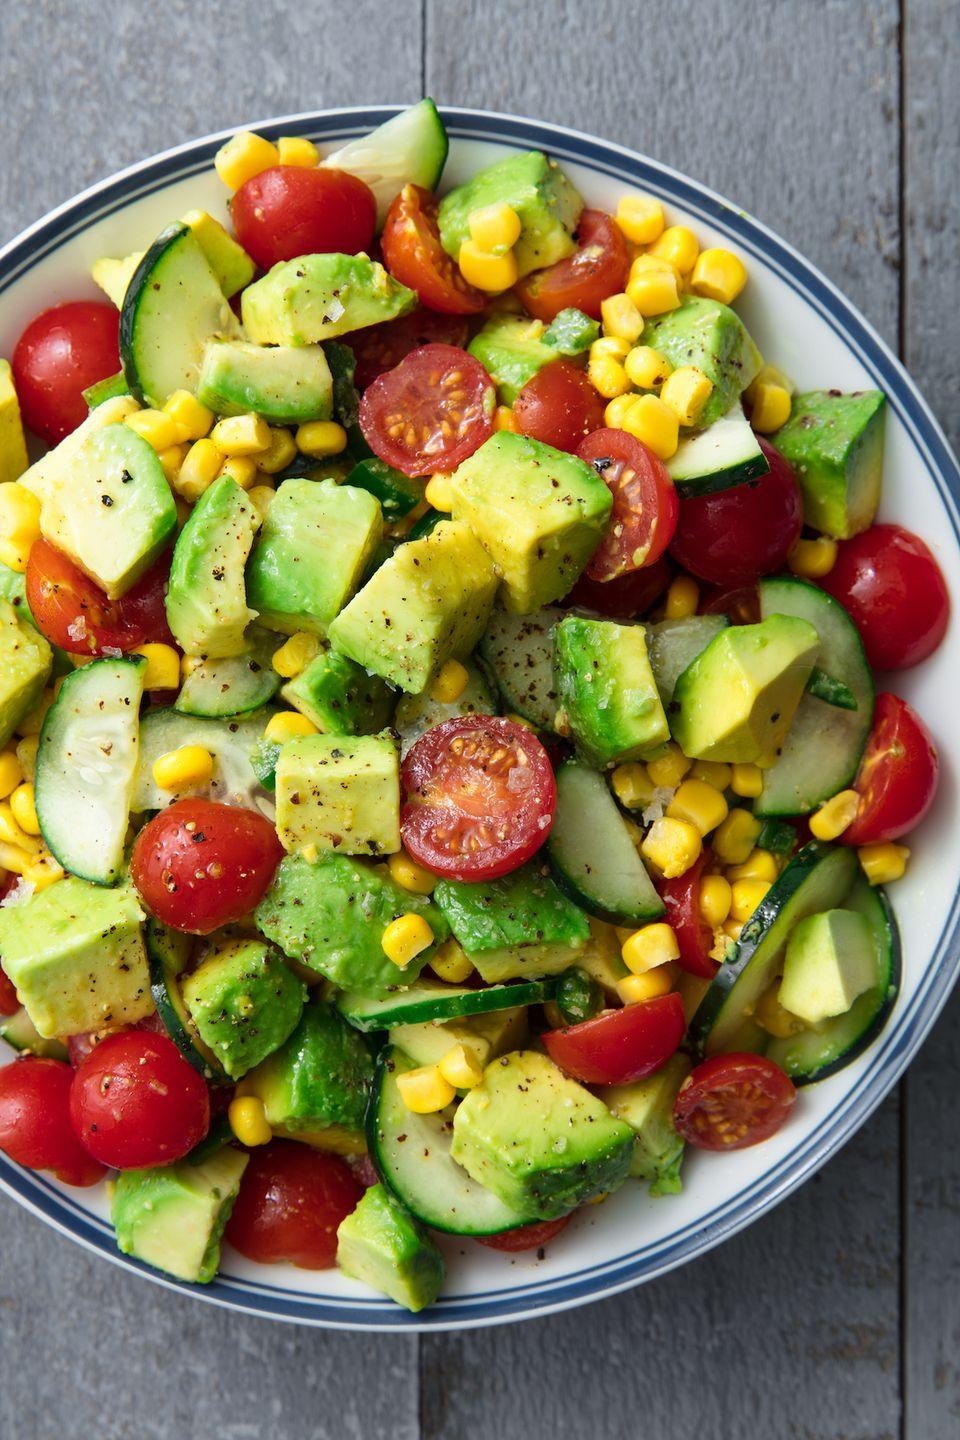 "<p>Yet another reason to love avocados.</p><p>Get the recipe from <a href=""https://www.delish.com/cooking/recipe-ideas/a19872947/avocado-tomato-salad-recipe/"" rel=""nofollow noopener"" target=""_blank"" data-ylk=""slk:Delish."" class=""link rapid-noclick-resp"">Delish.</a> </p>"